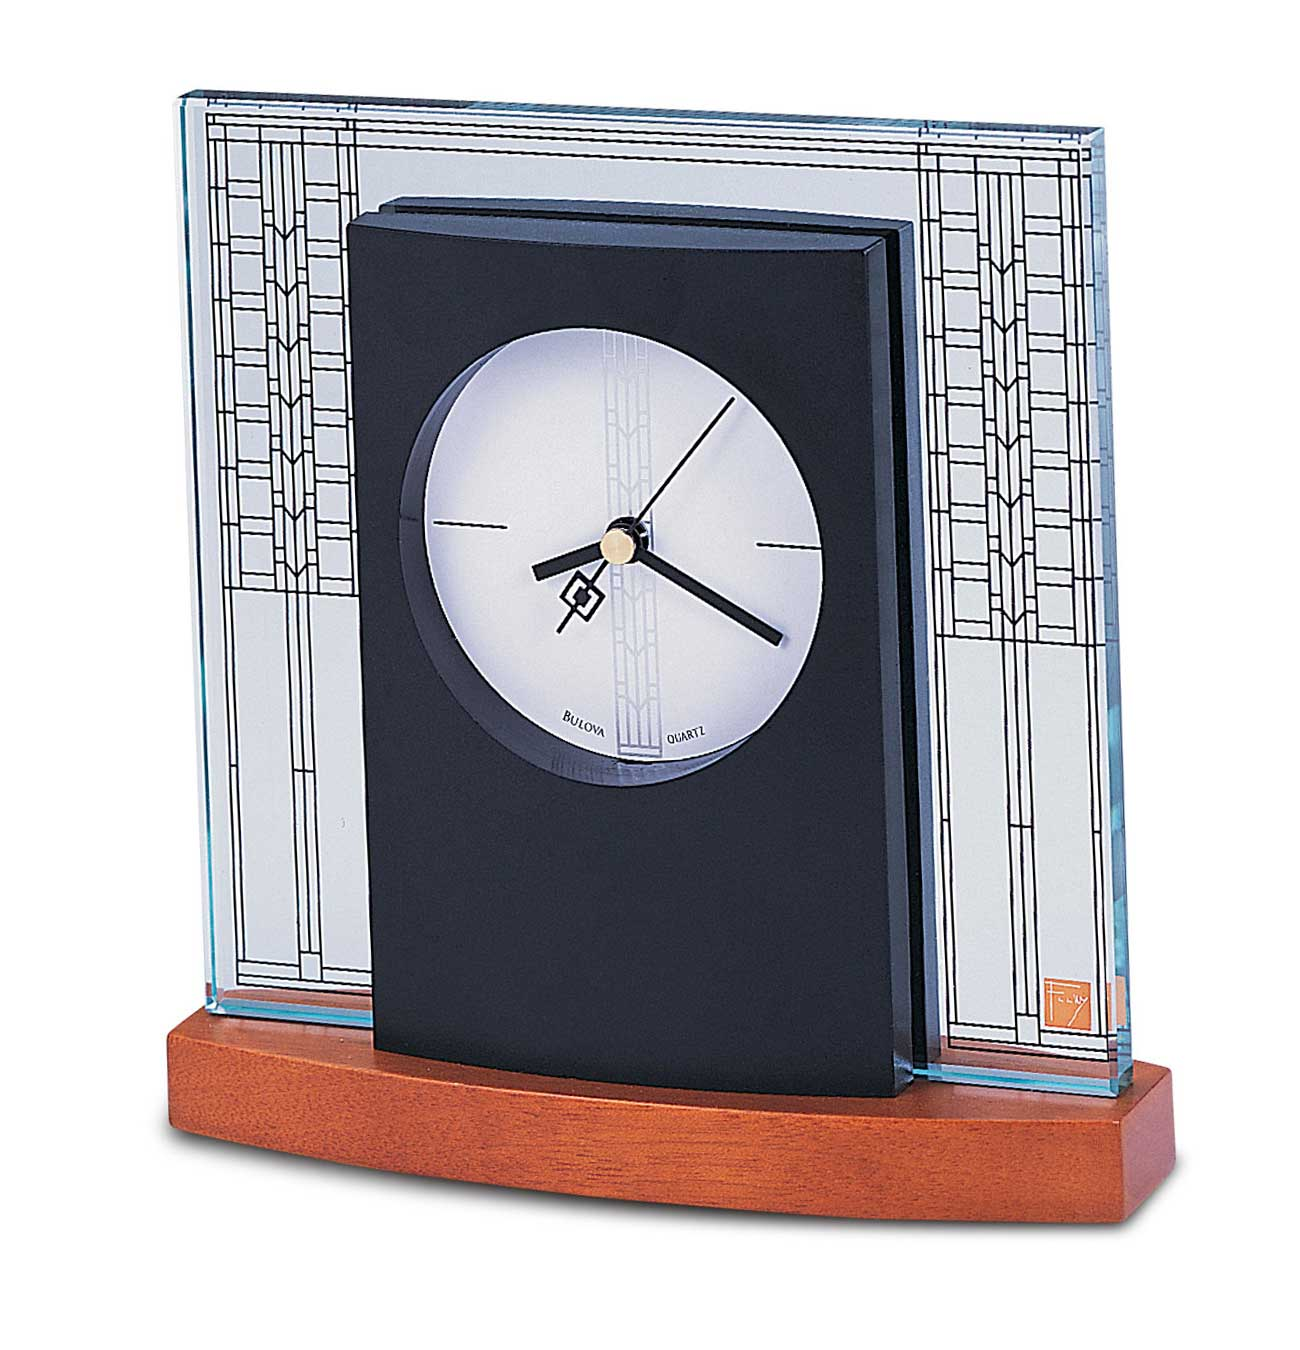 Bulova Mantel Clock | Small Mantel Clocks | Decorative Mantel Clocks